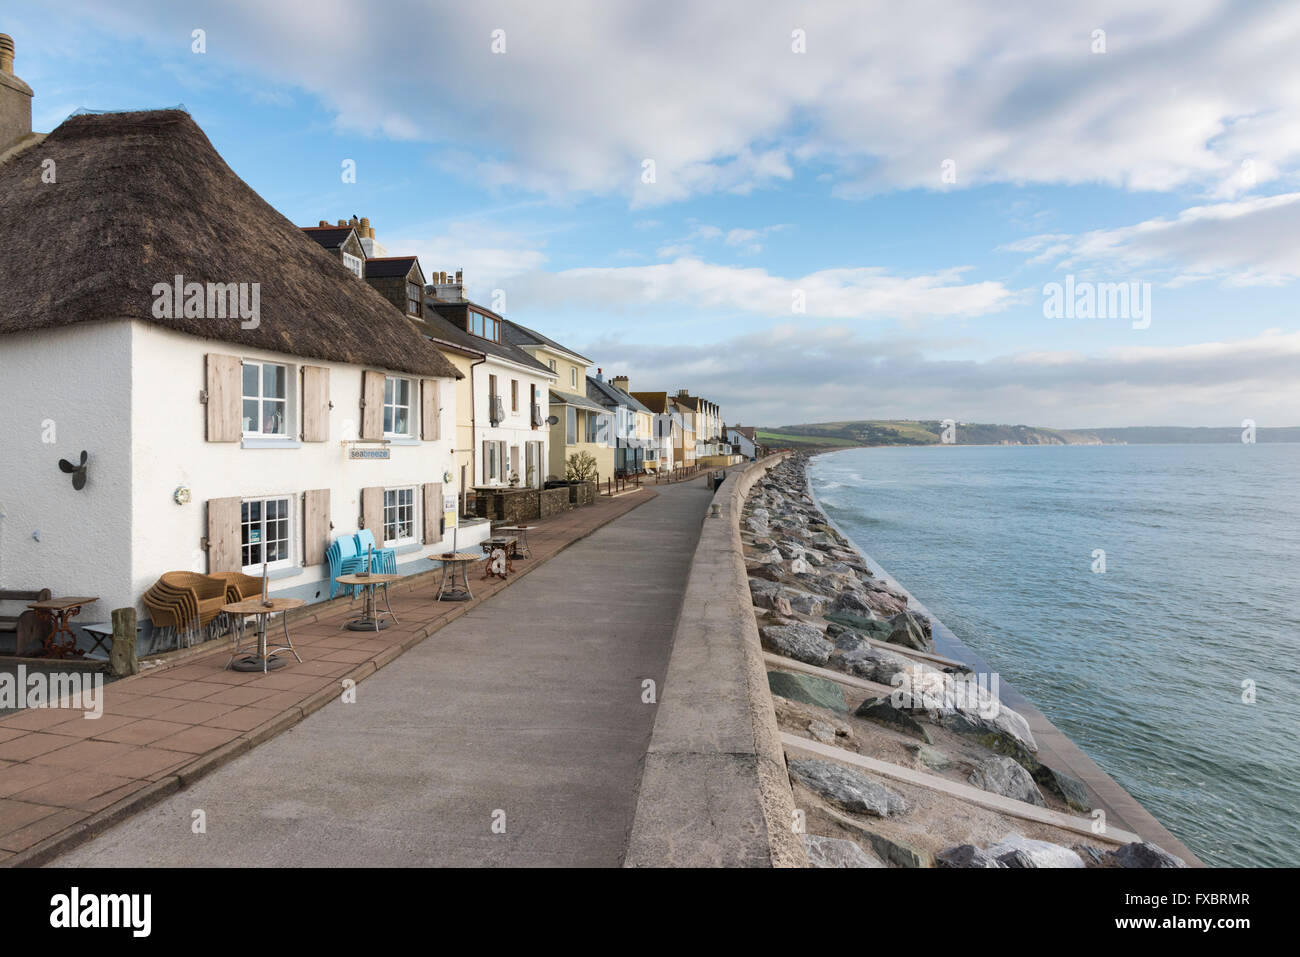 house-on-the-seafront-and-promenade-at-torcross-devon-uk